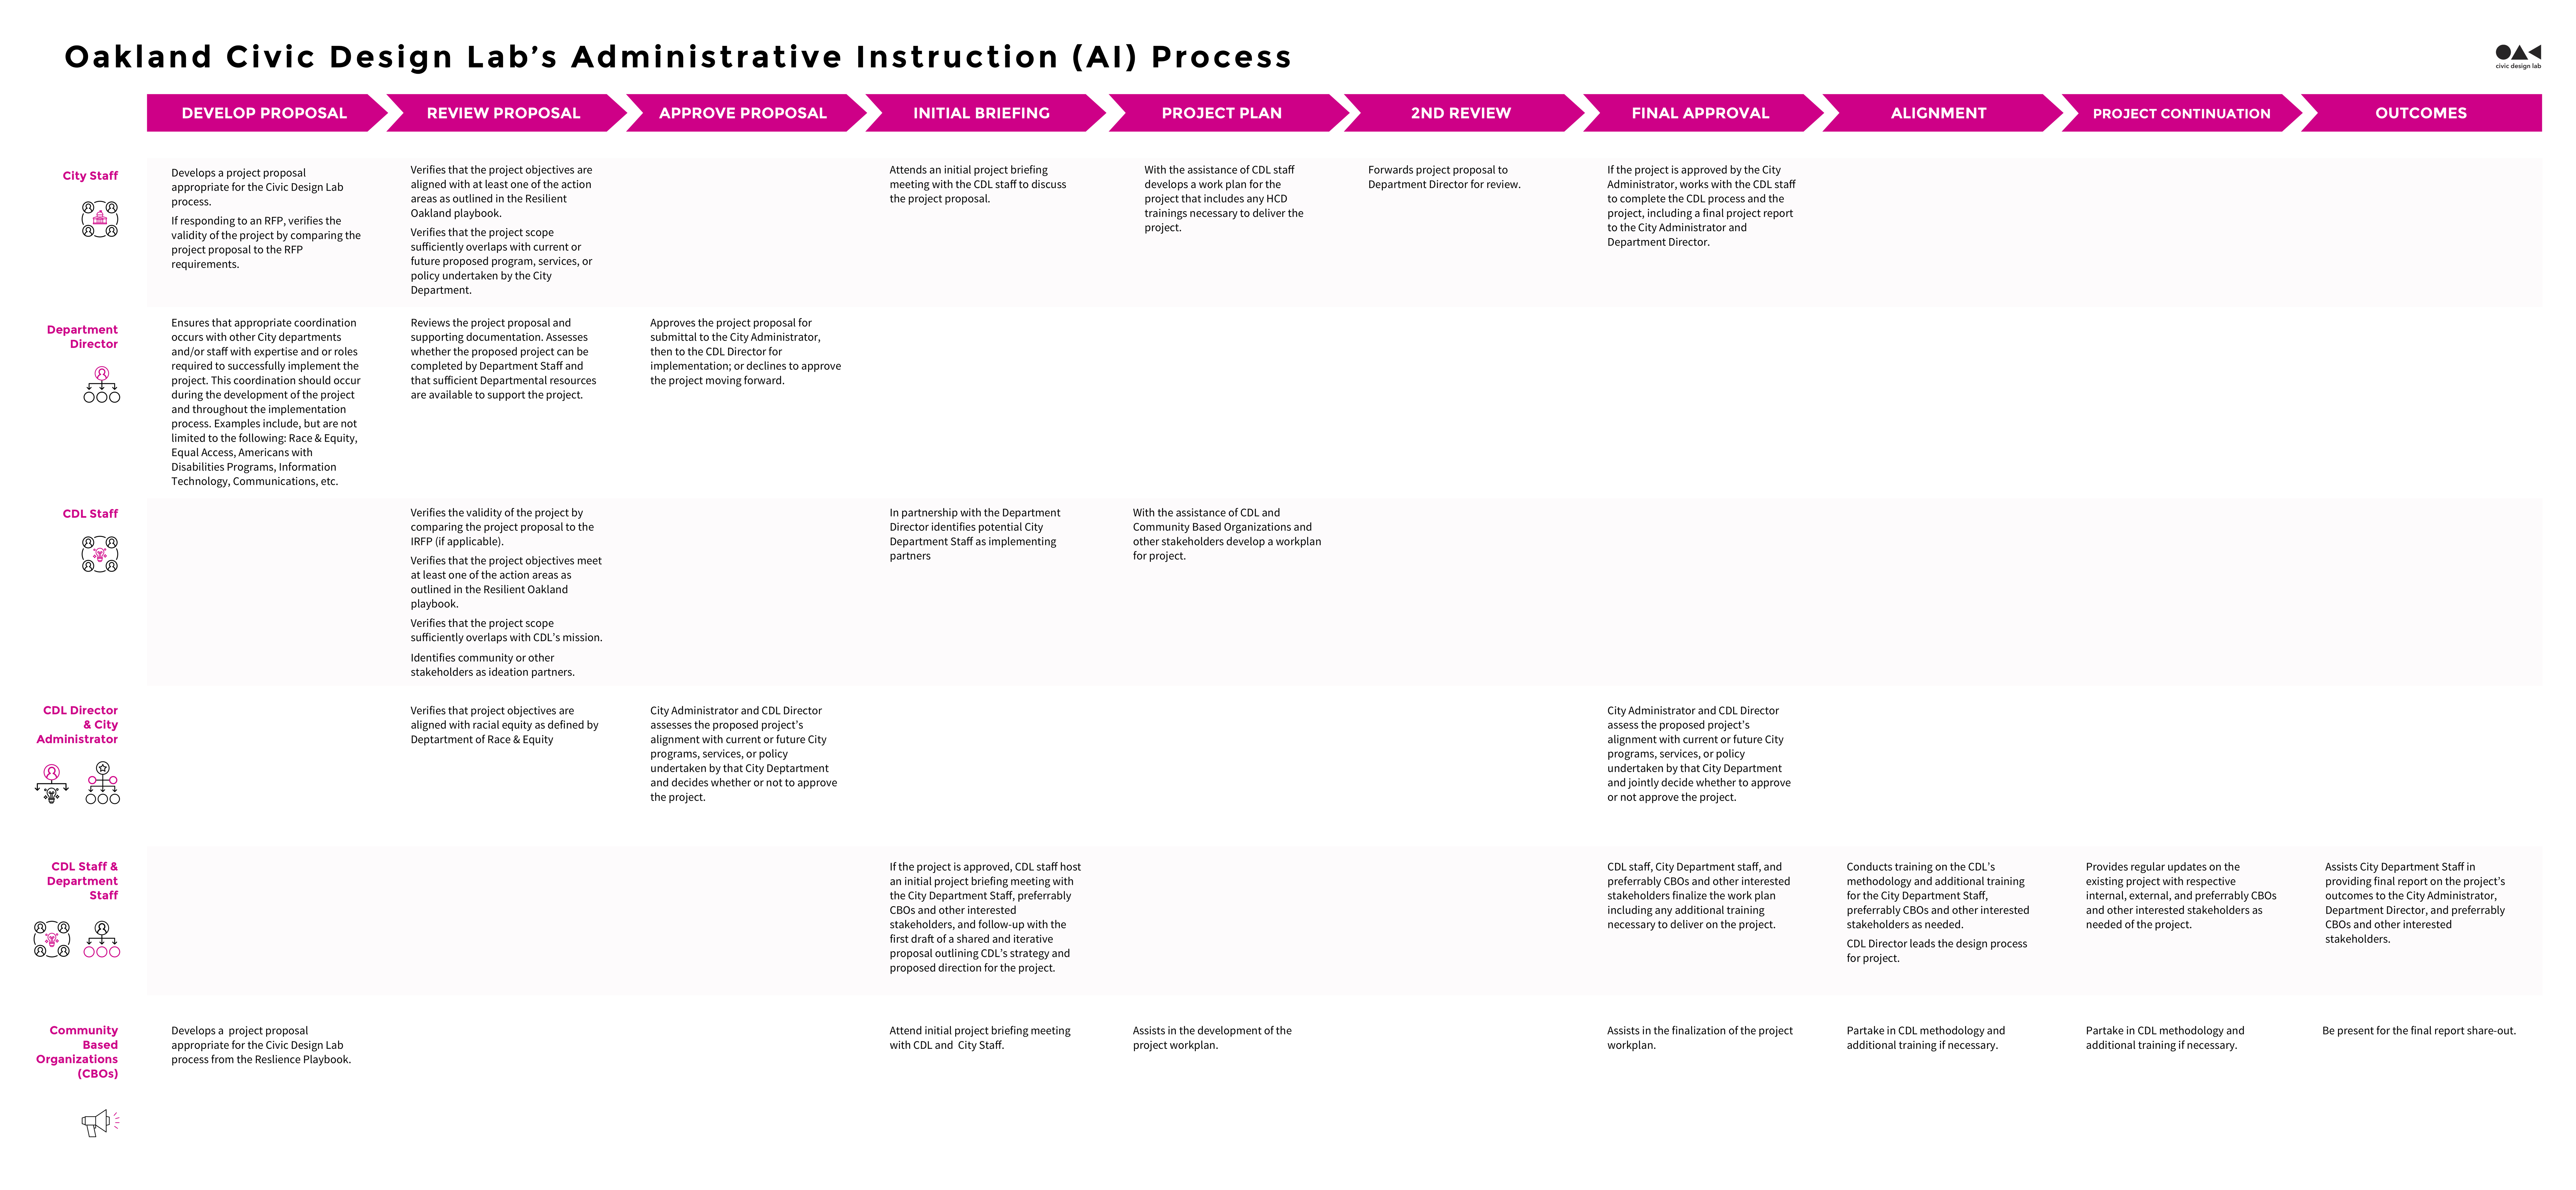 Administrative Instruction Governing Civic Design Lab Projects (visual) Image